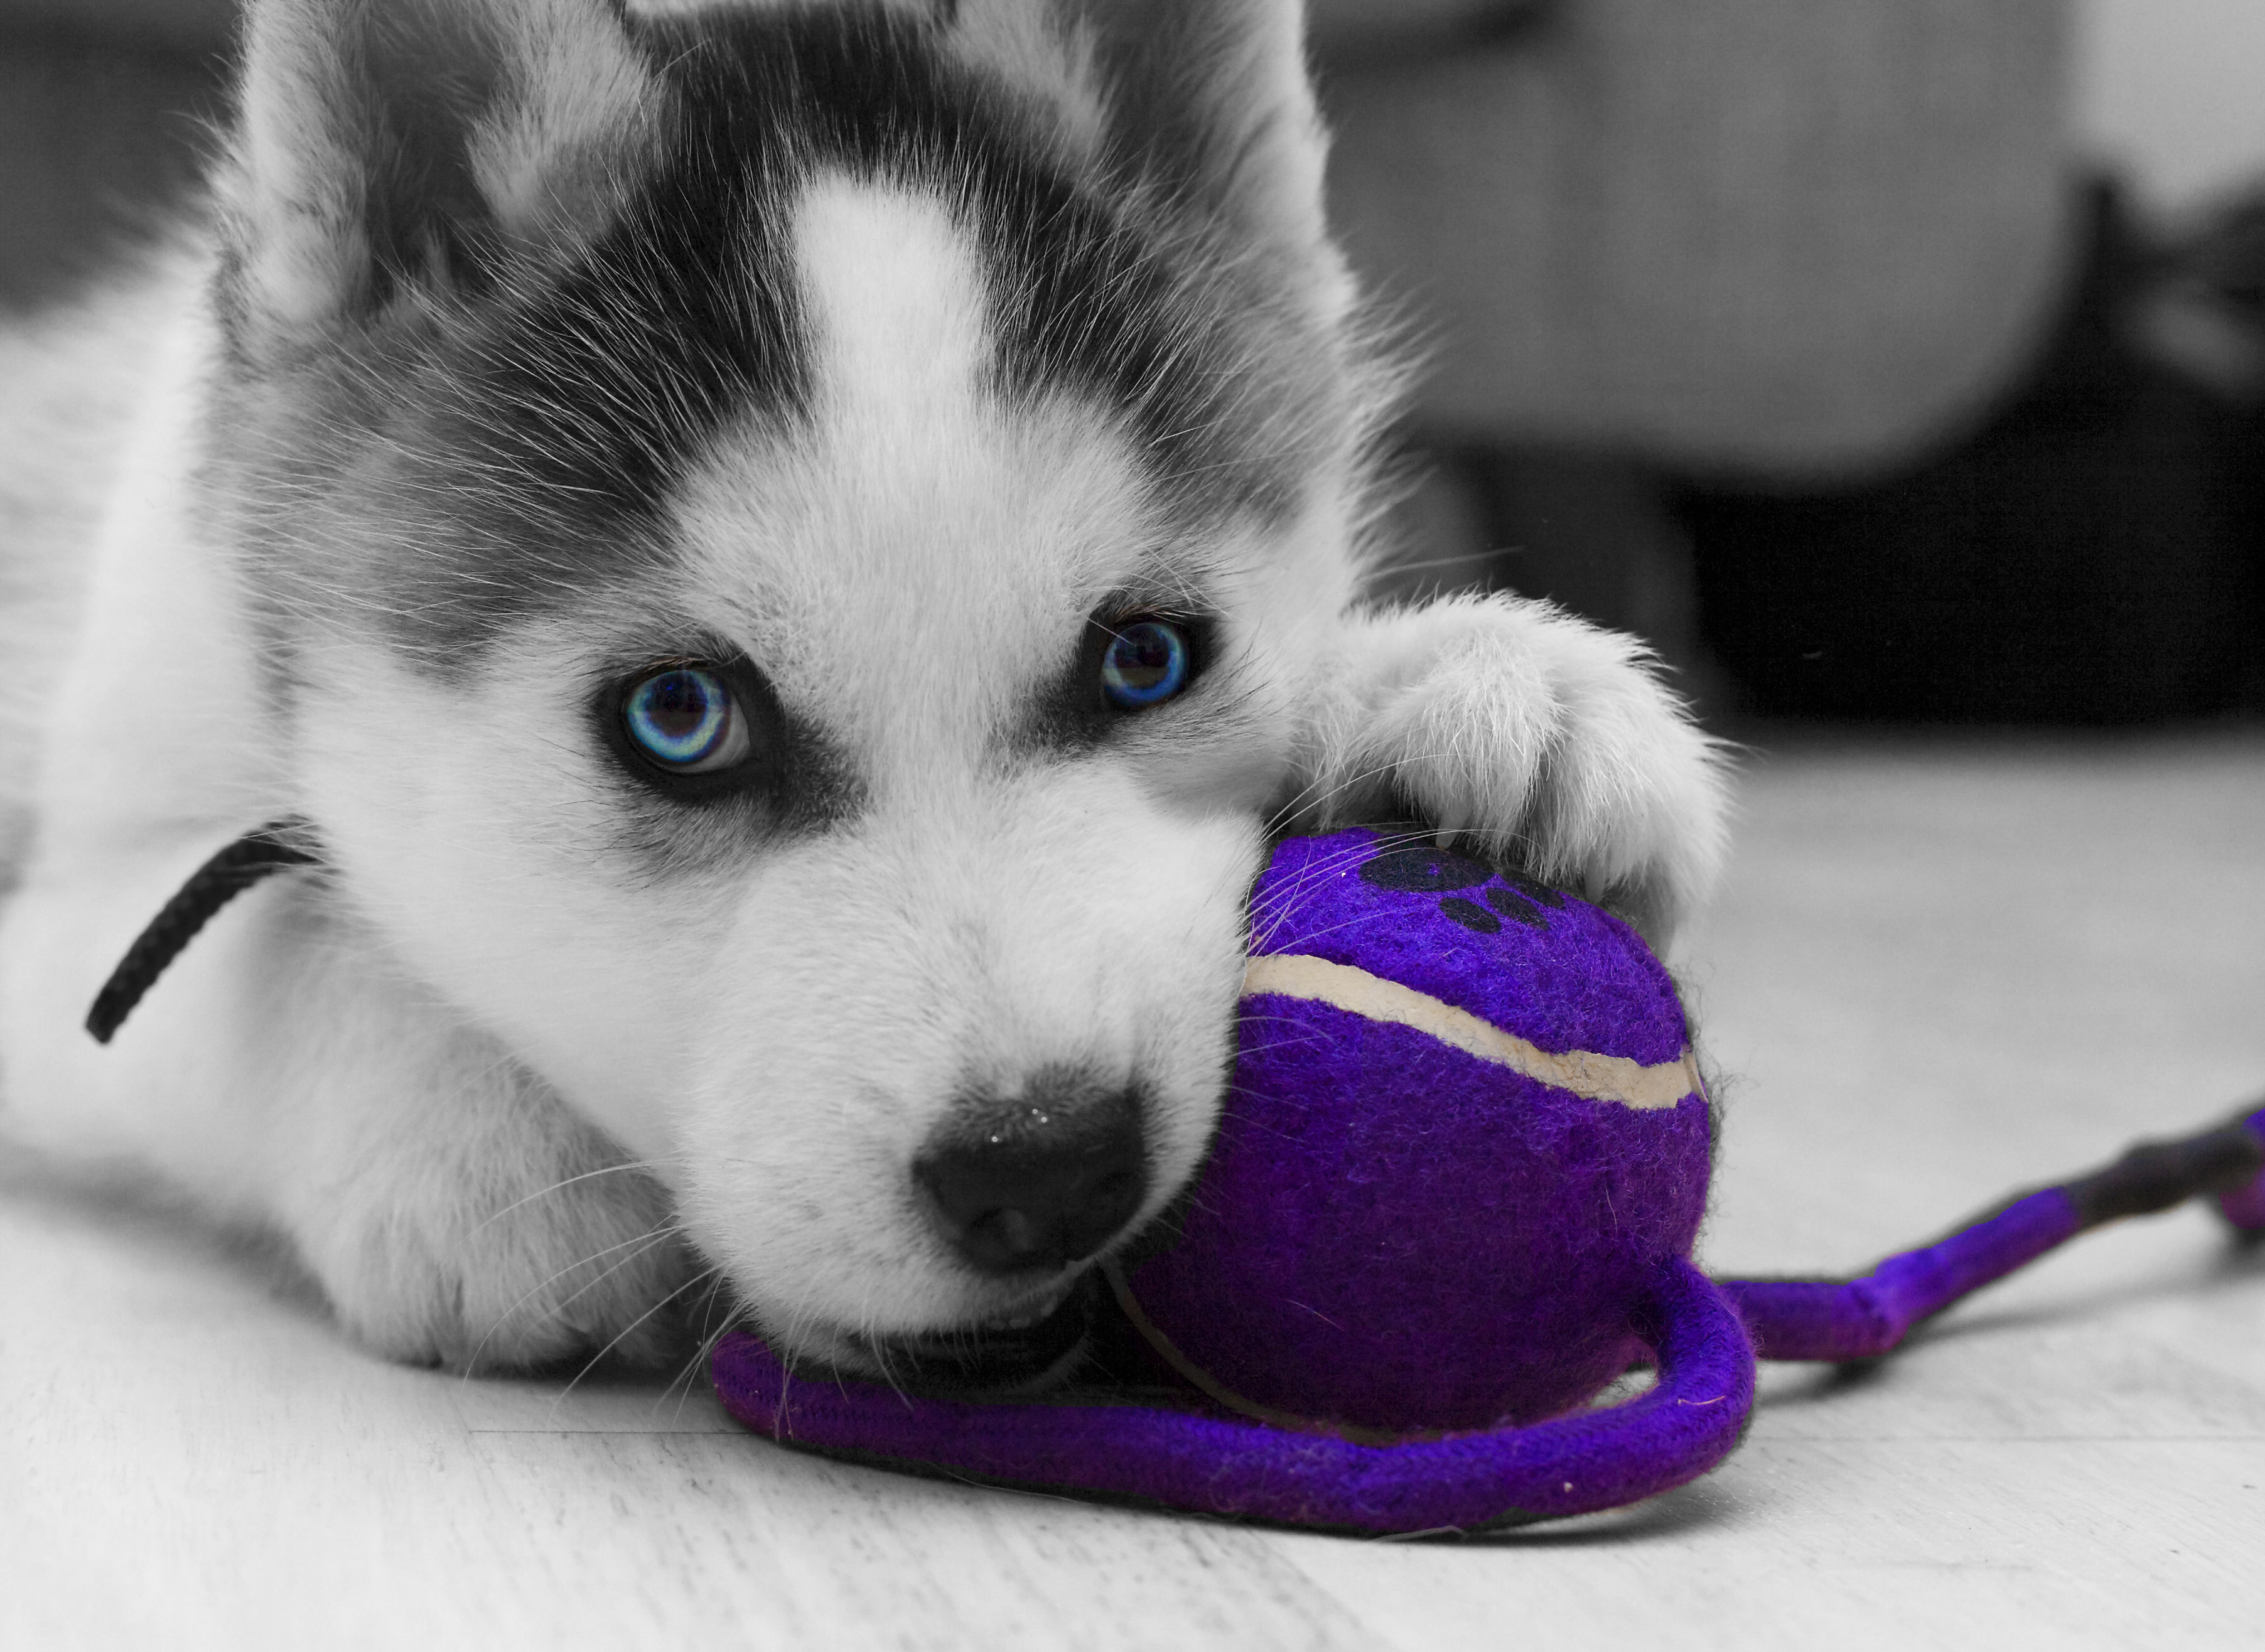 Siberian Husky Puppy Wallpapers - 3608x2632 - 1260485 HD Wide Wallpaper for Widescreen